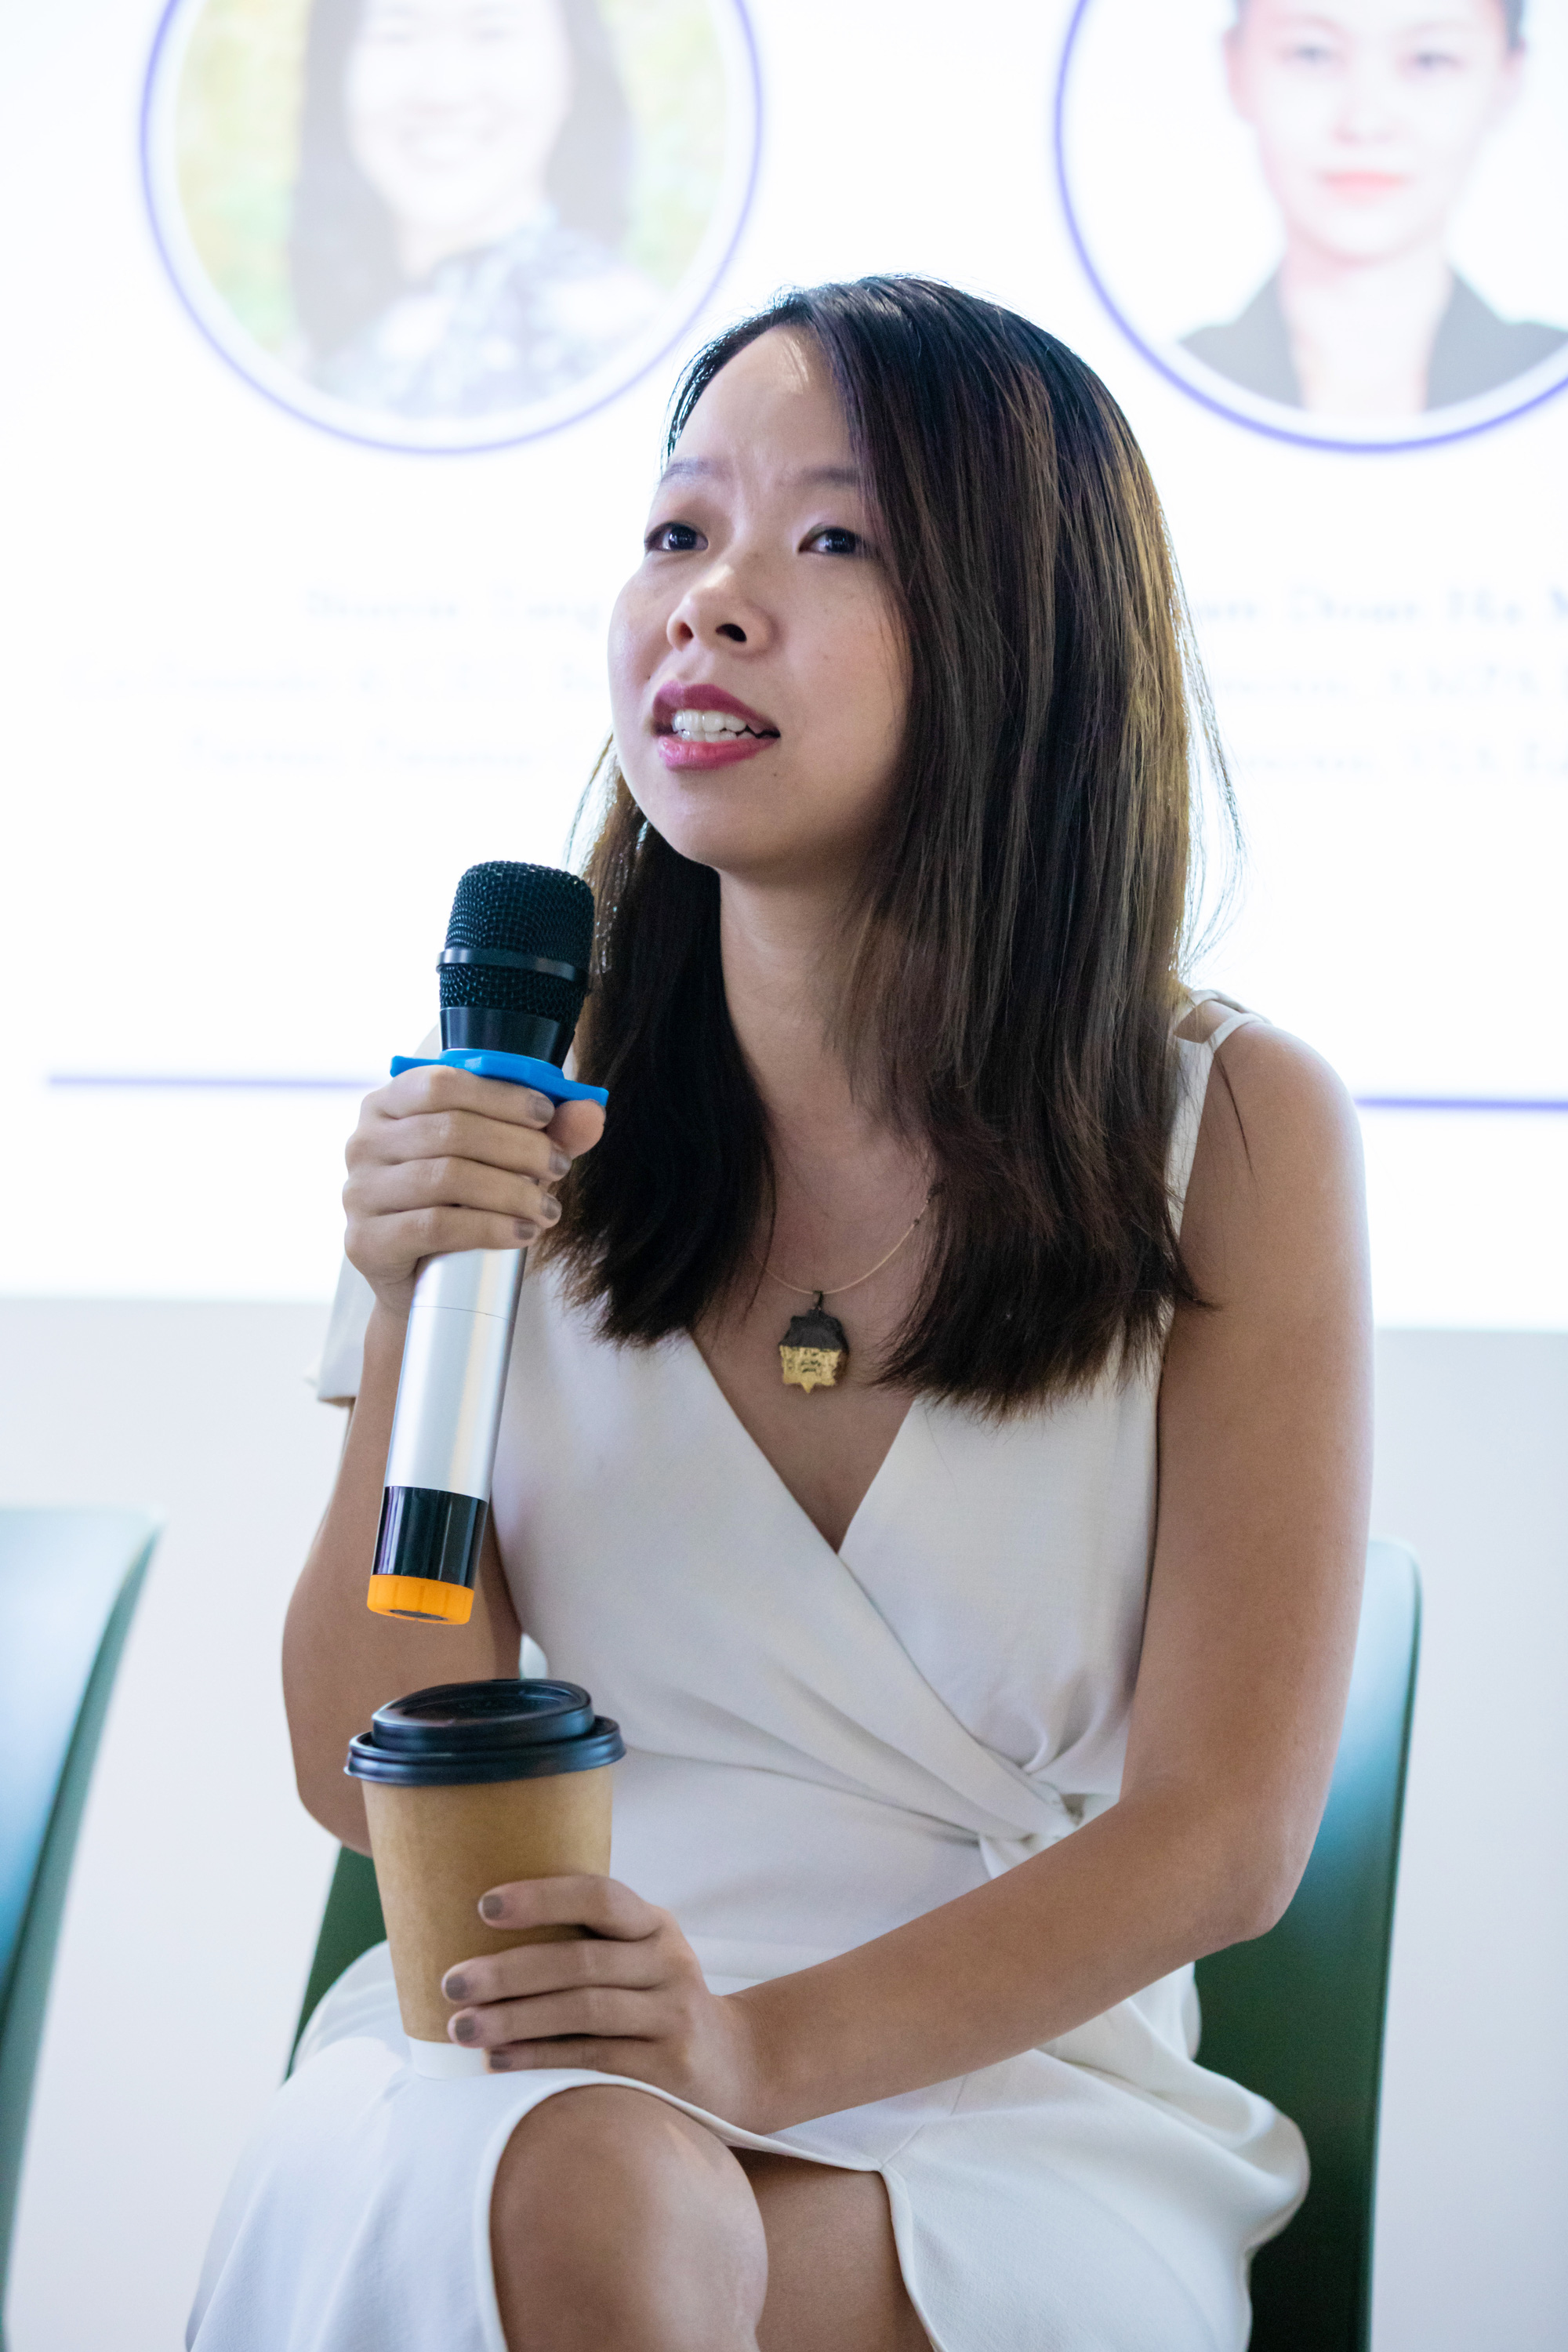 Ngo Thuy Ngoc Tu speaks to students at an international university in Ho Chi Minh City in this provided photo.